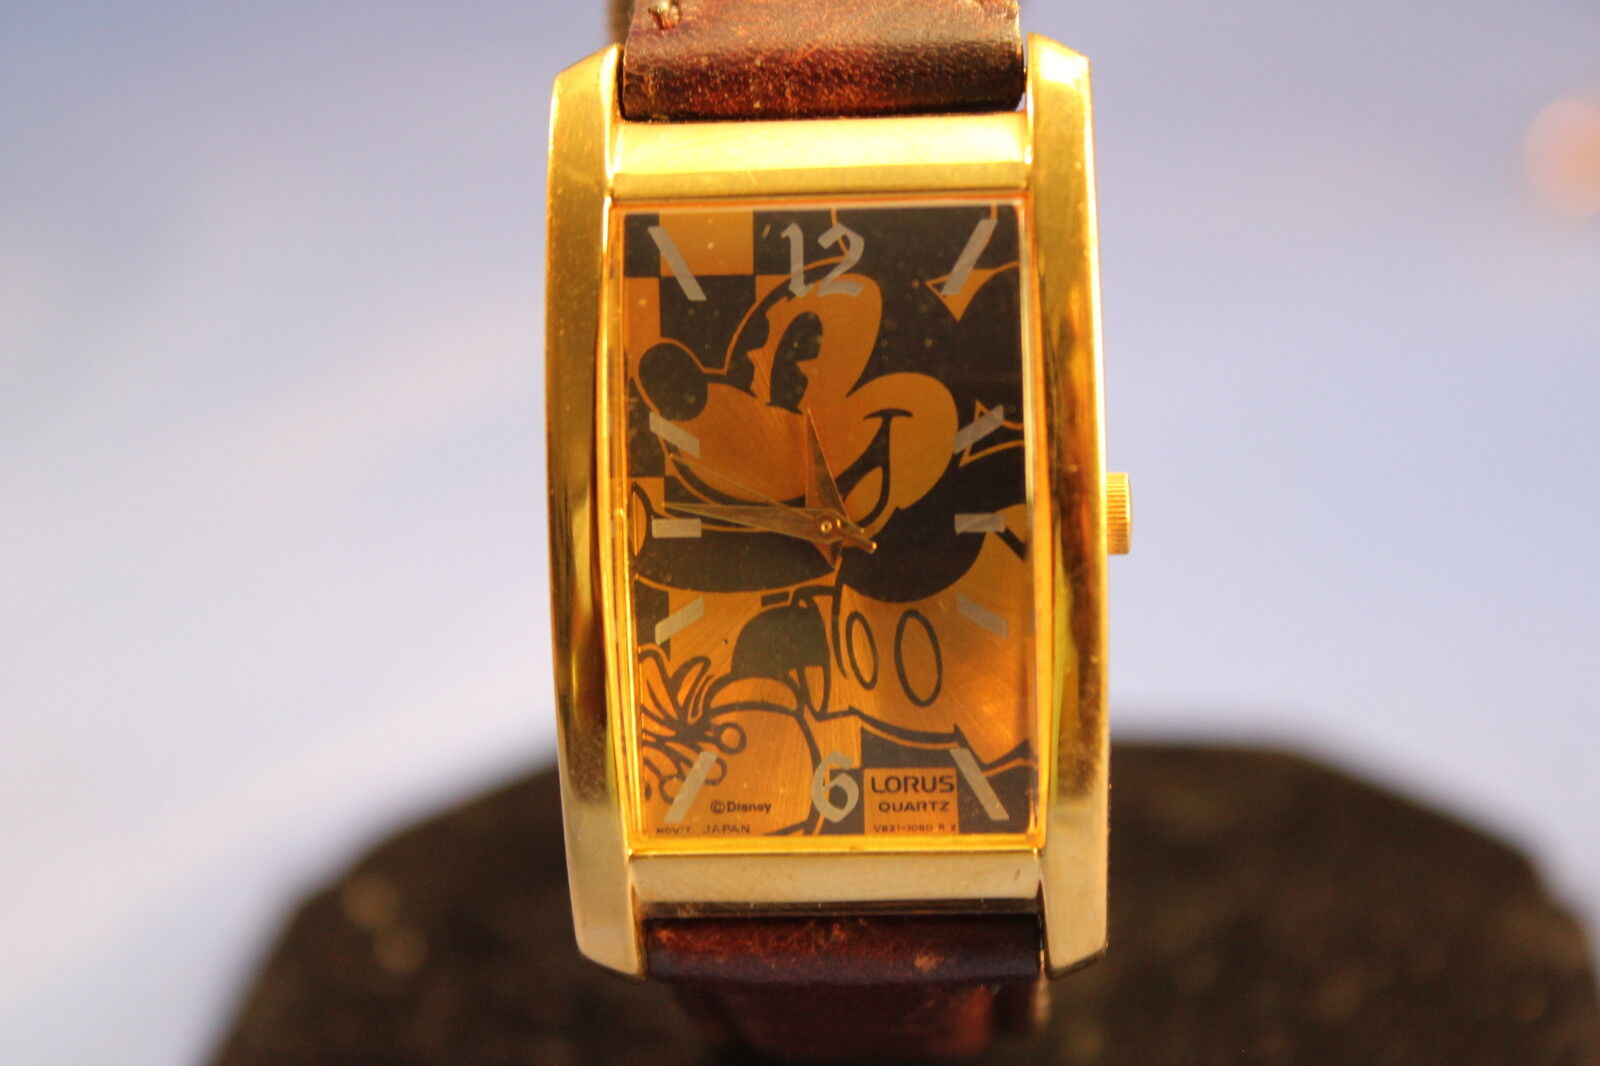 Sir Charles Vintage watches